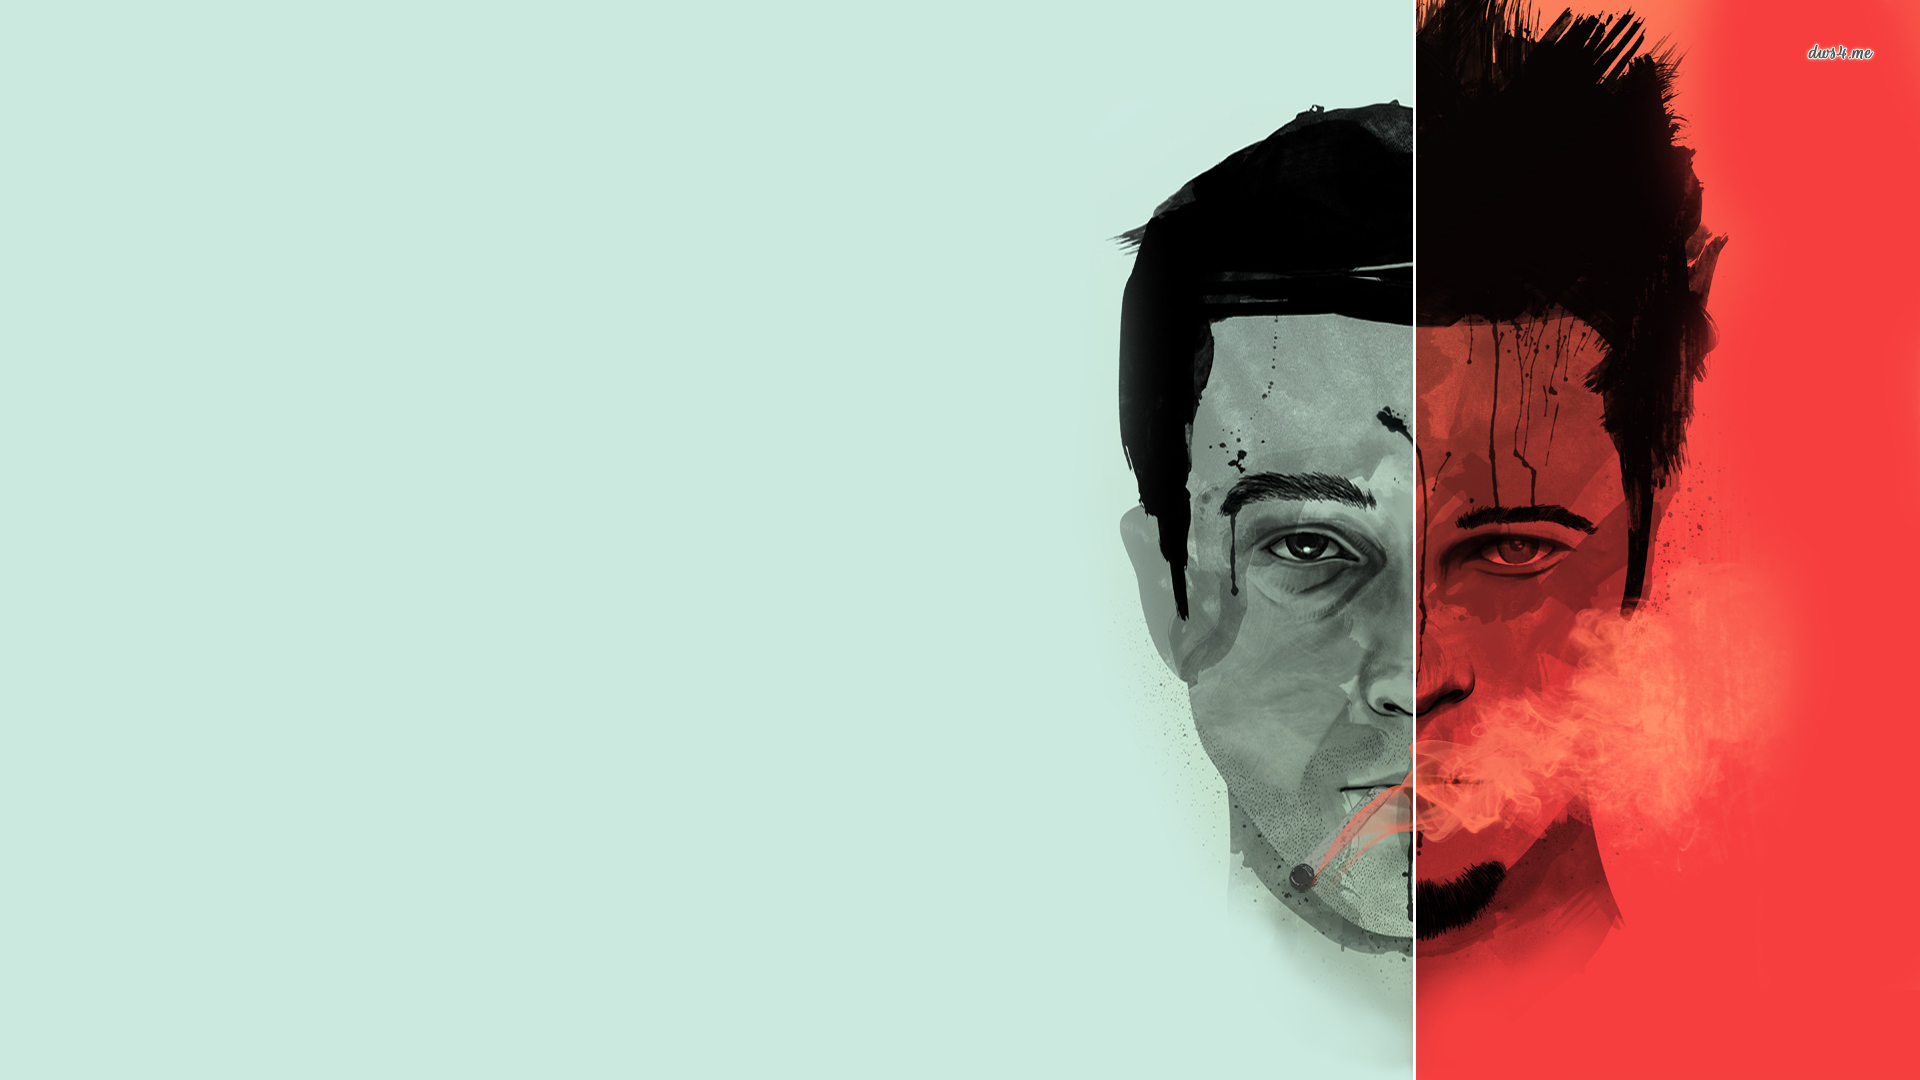 Tyler Durden And The Narrator Fight Club Wallpaper Fight Club